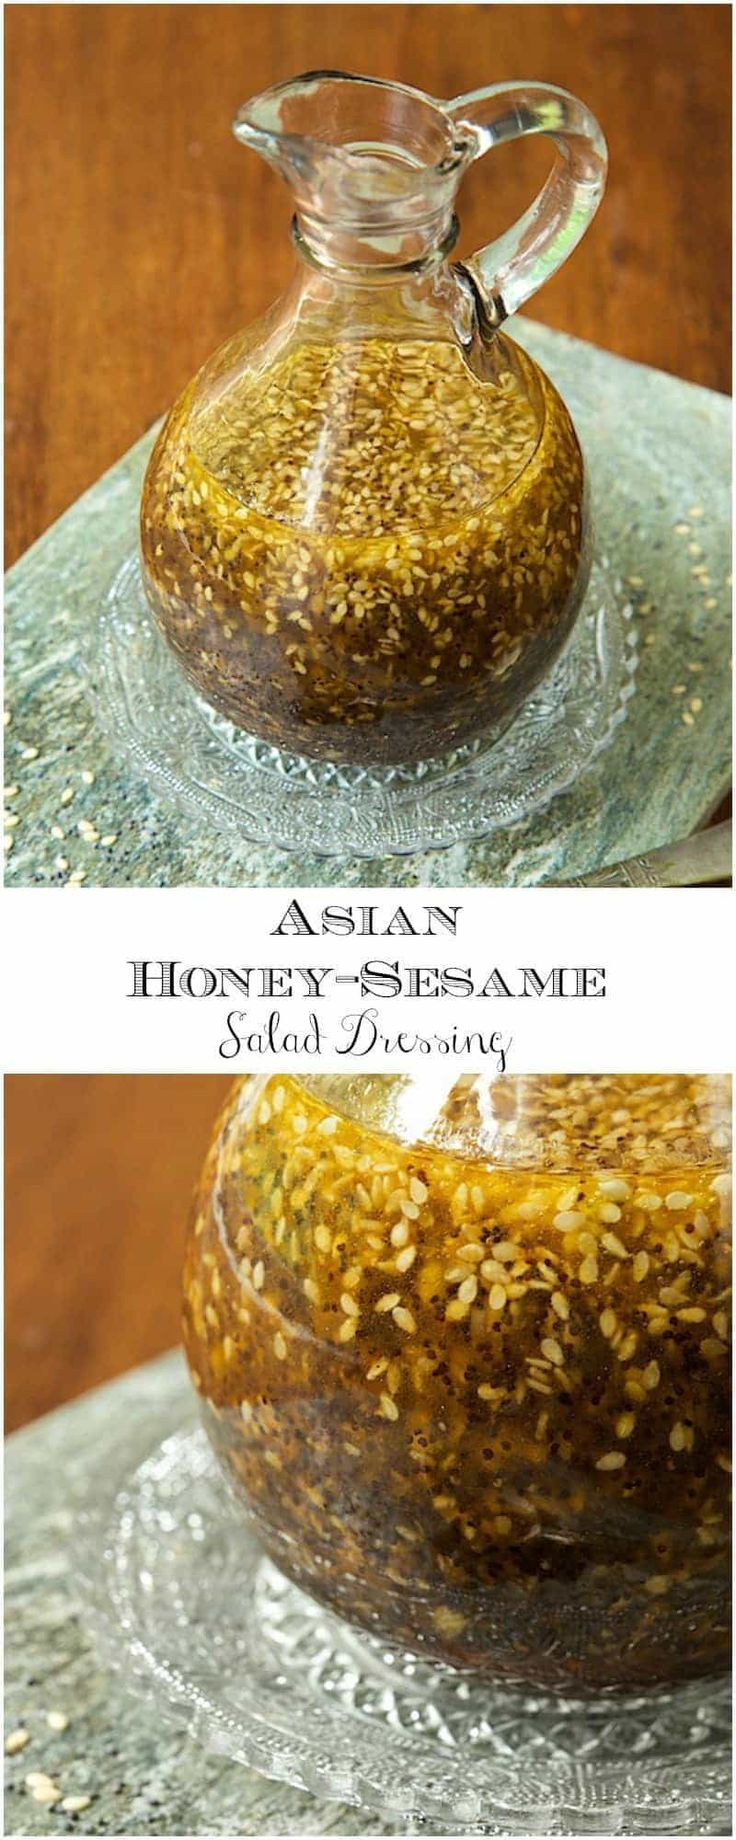 Incredibly delicious, this dressing goes so well with a myriad of salad ingredients. It's not only a salad dressing but this also makes an amazing drizzling sauce for grilled chicken, shrimp, pork or beef.